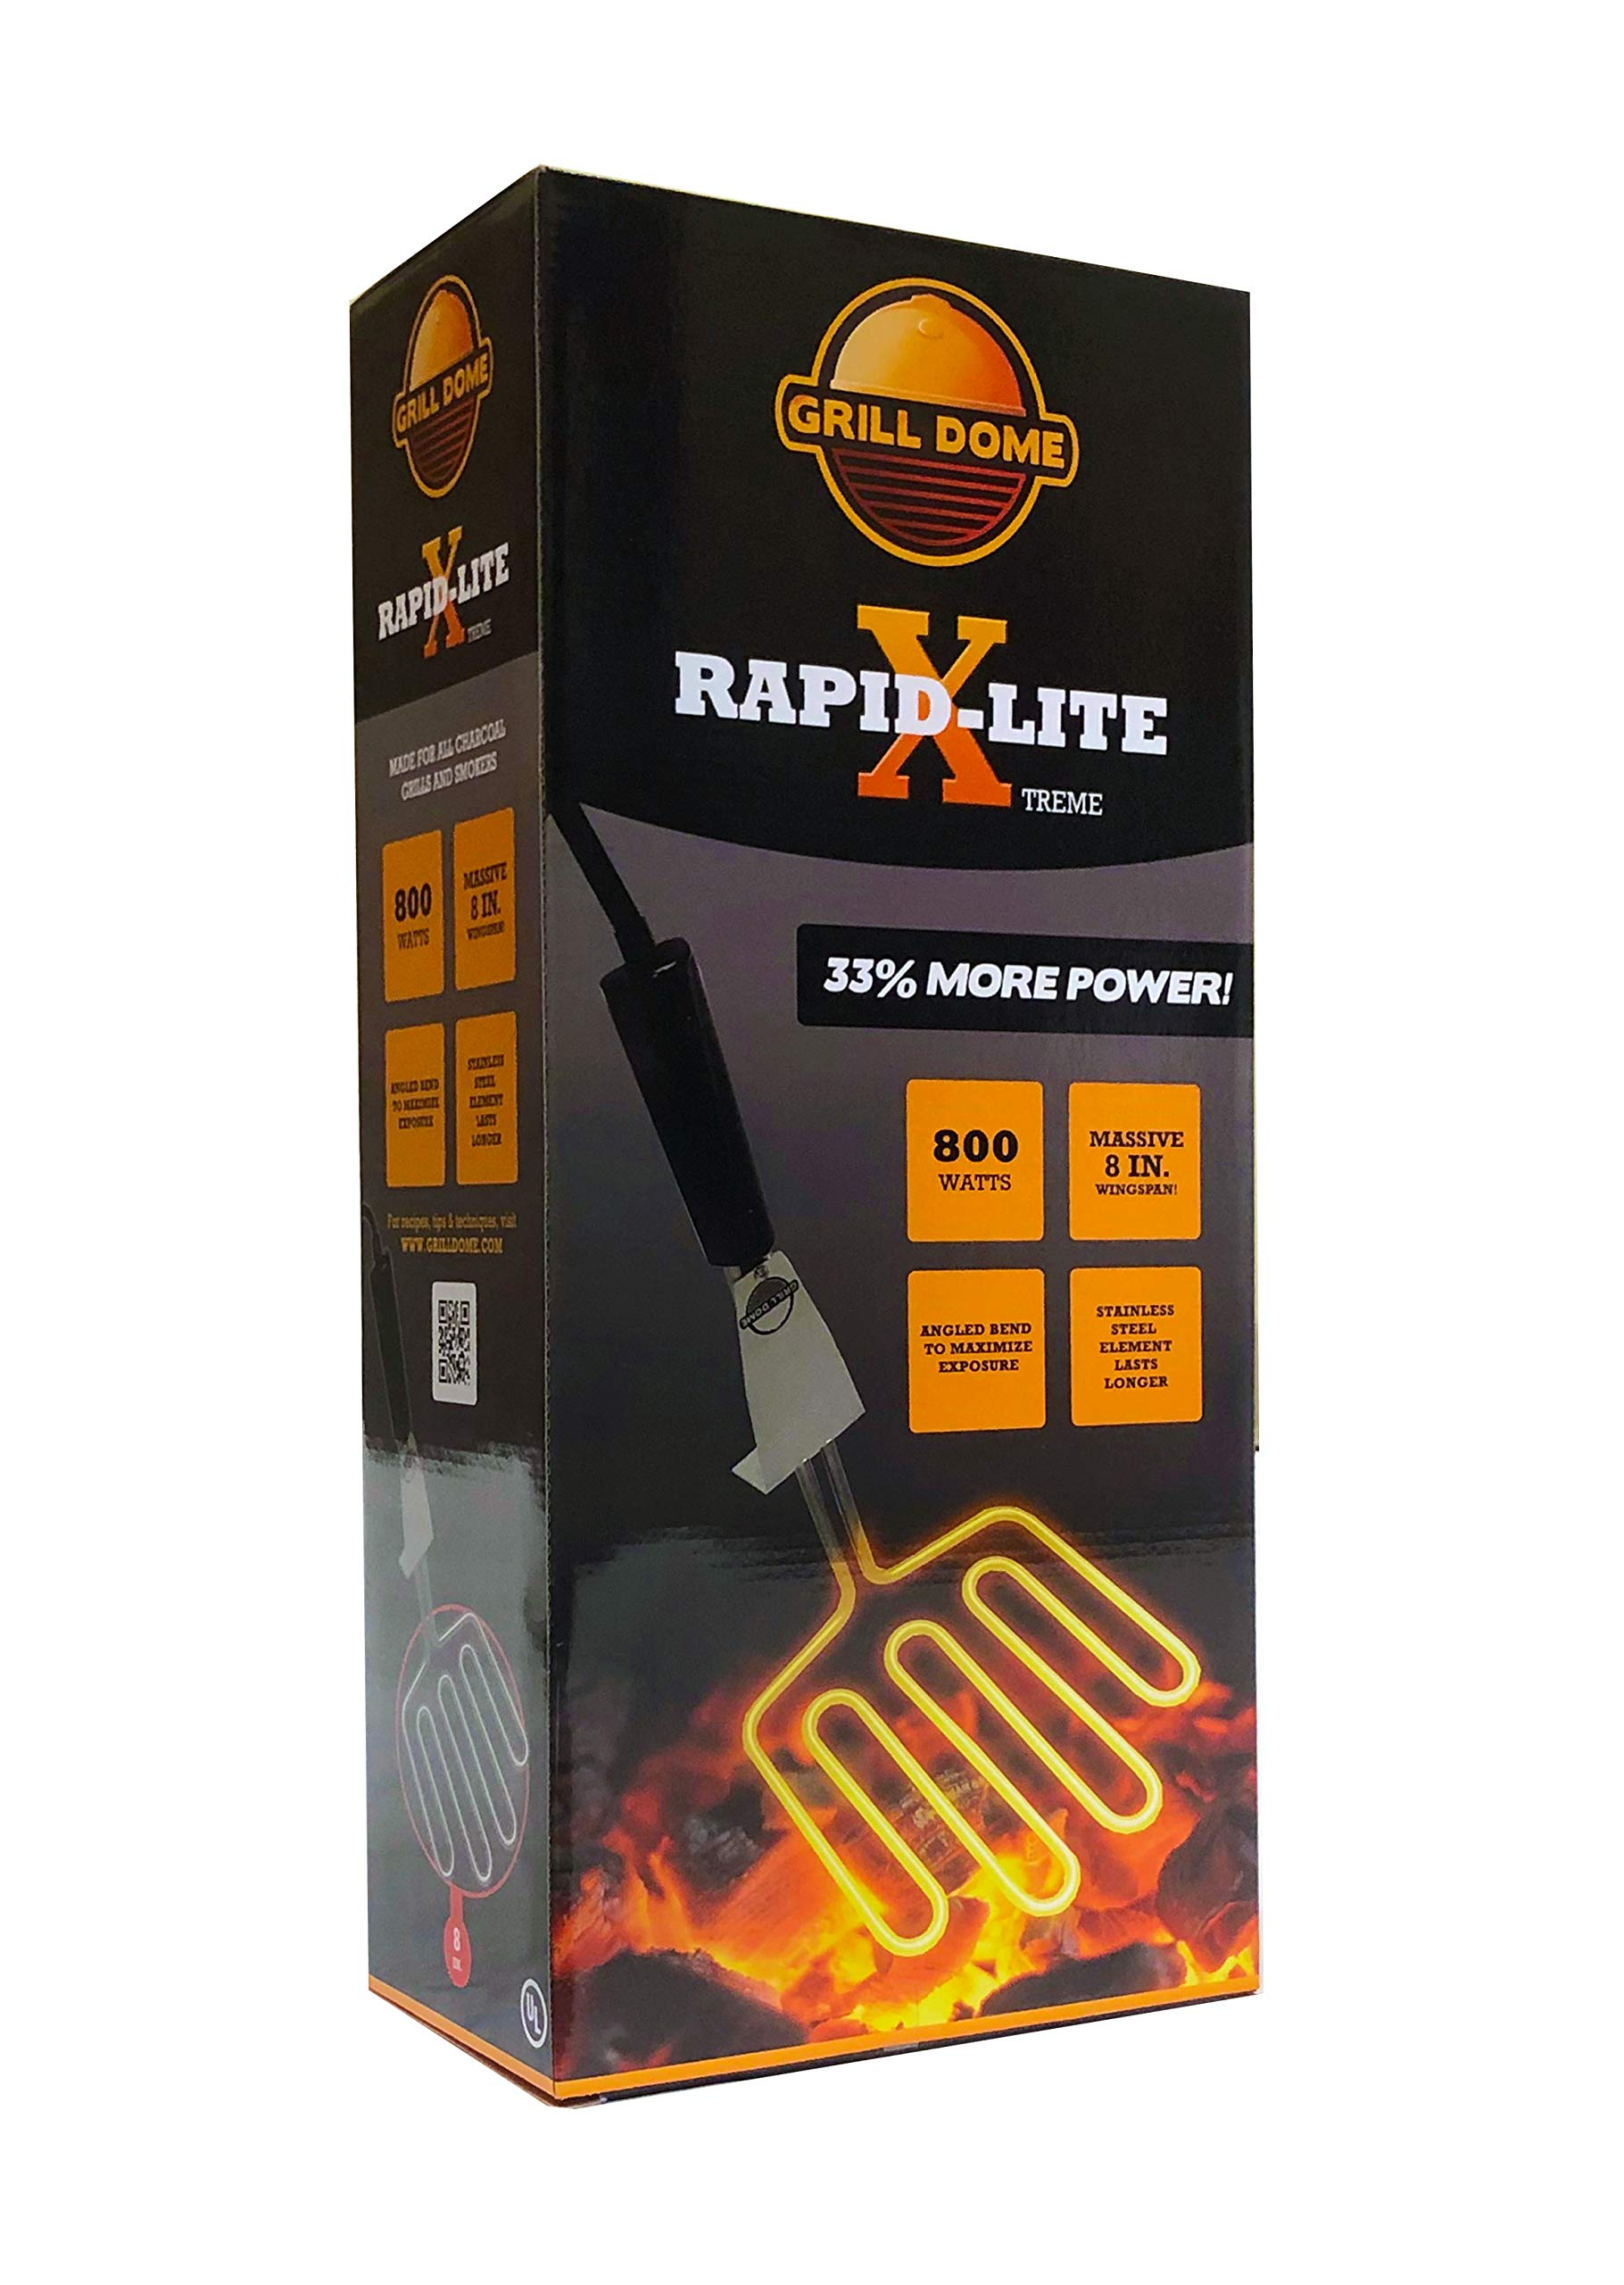 Grill Dome Rapid-X Electric Charcoal Lighter, Xtreme, Black by Grill Dome